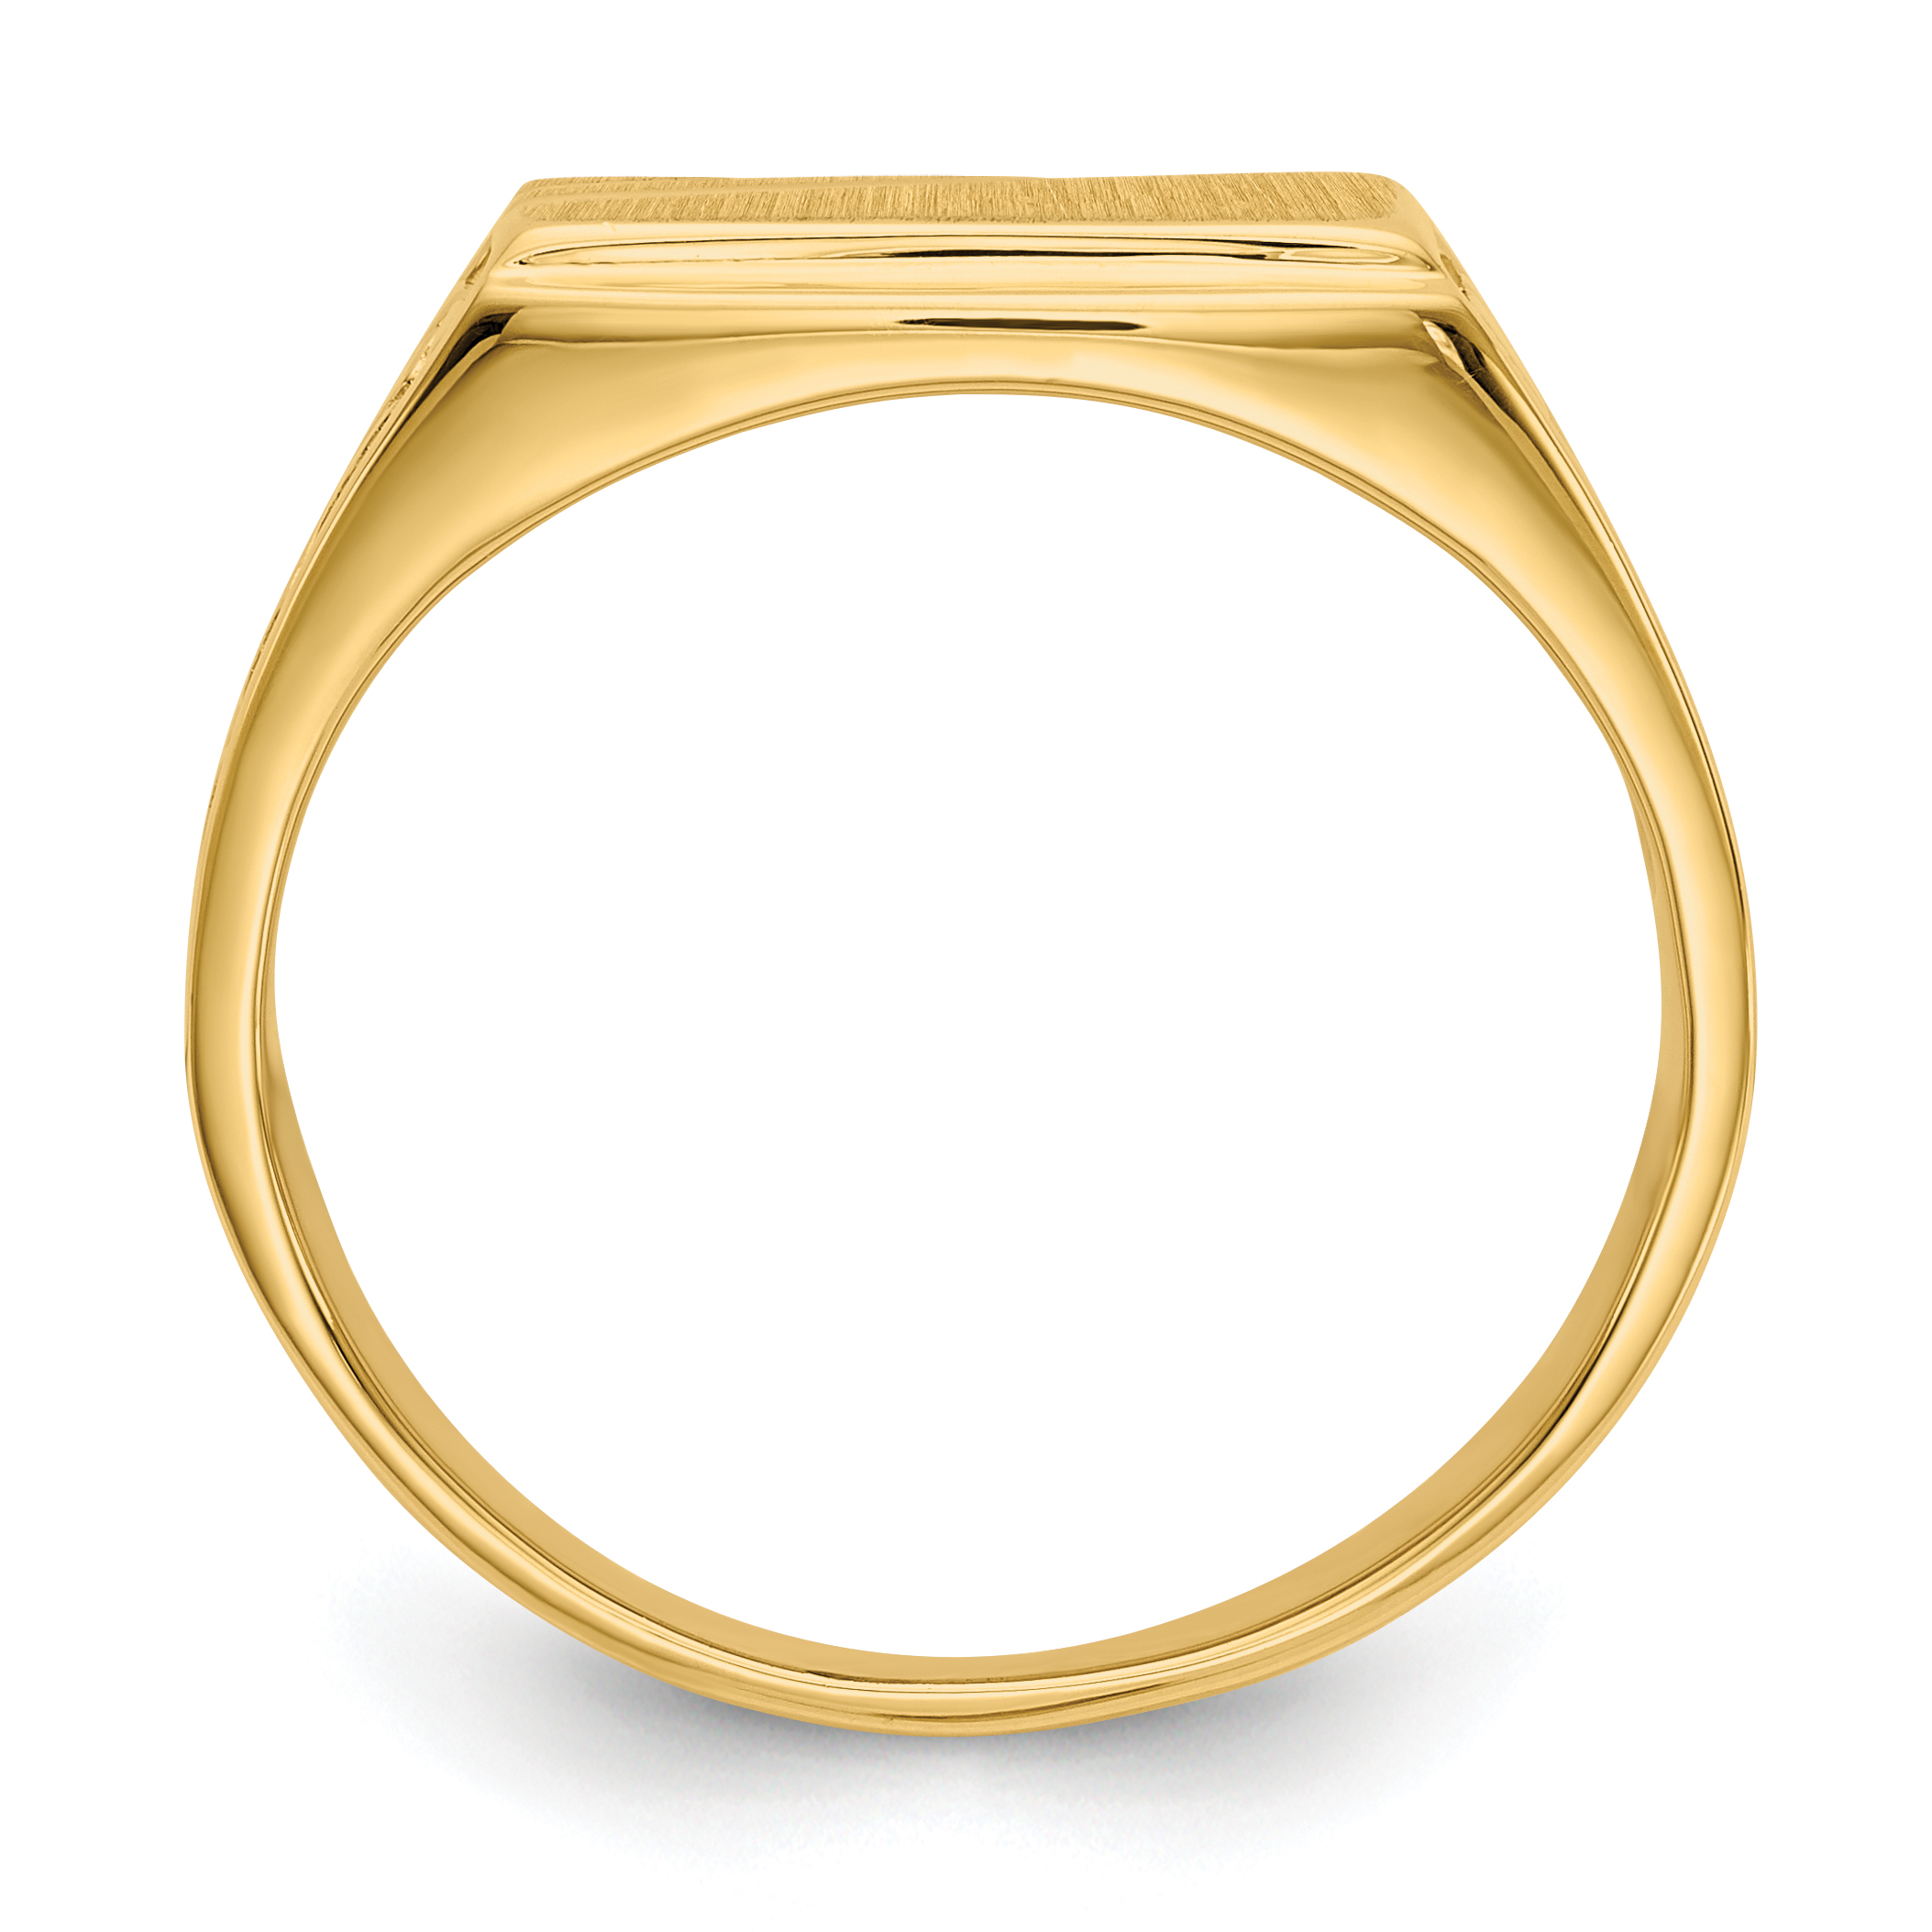 14k Yellow Gold Mens Signet Band Ring Size 10.00 Man Fine Jewelry Gift For Dad Mens For Him - image 1 de 5